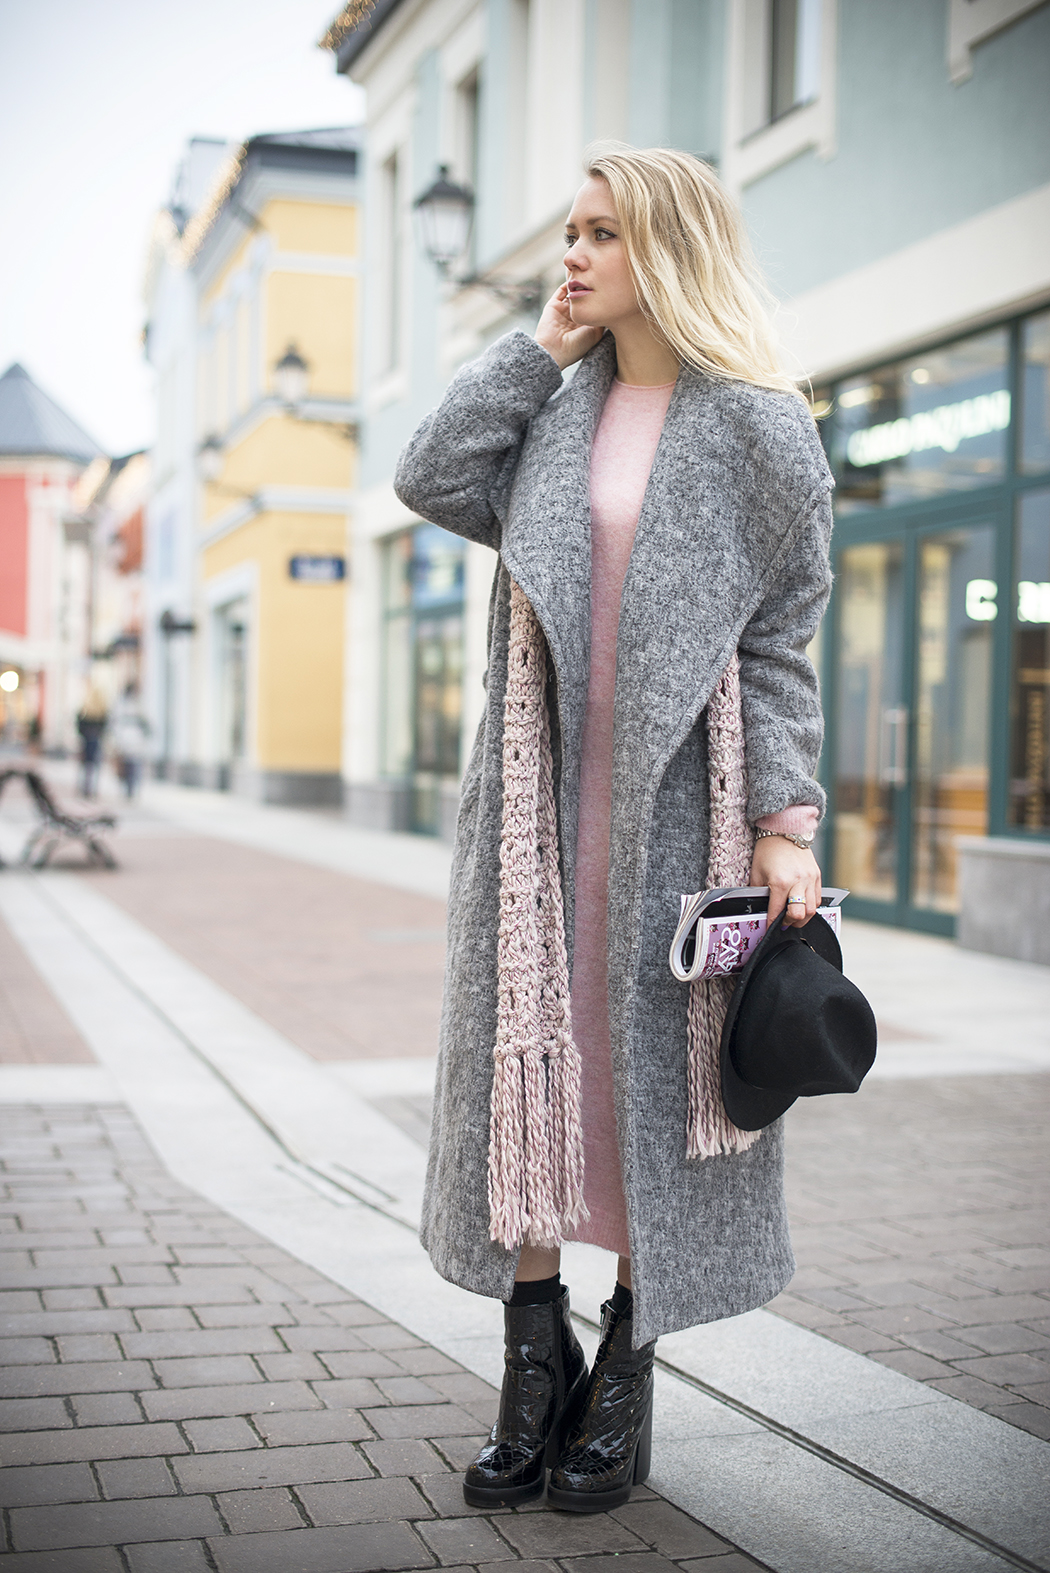 inspiration, streetstyle, autumn outfit, autumn streetstyle, moscow fashion week, annamidday, top fashion blogger, top russian fashion blogger, фэшн блогер, русский блогер, известный блогер, топовый блогер, russian bloger, top russian blogger, streetfashion, russian fashion blogger, blogger, fashion, style, fashionista, модный блогер, российский блогер, ТОП блогер, ootd, lookoftheday, look, популярный блогер, российский модный блогер, annamidday, top russian blogger, russian girl, с чем носить серое пальто,  girly, how to wear hat, grey coat, stefanel, красивая девушка, русская девушка, fashion week